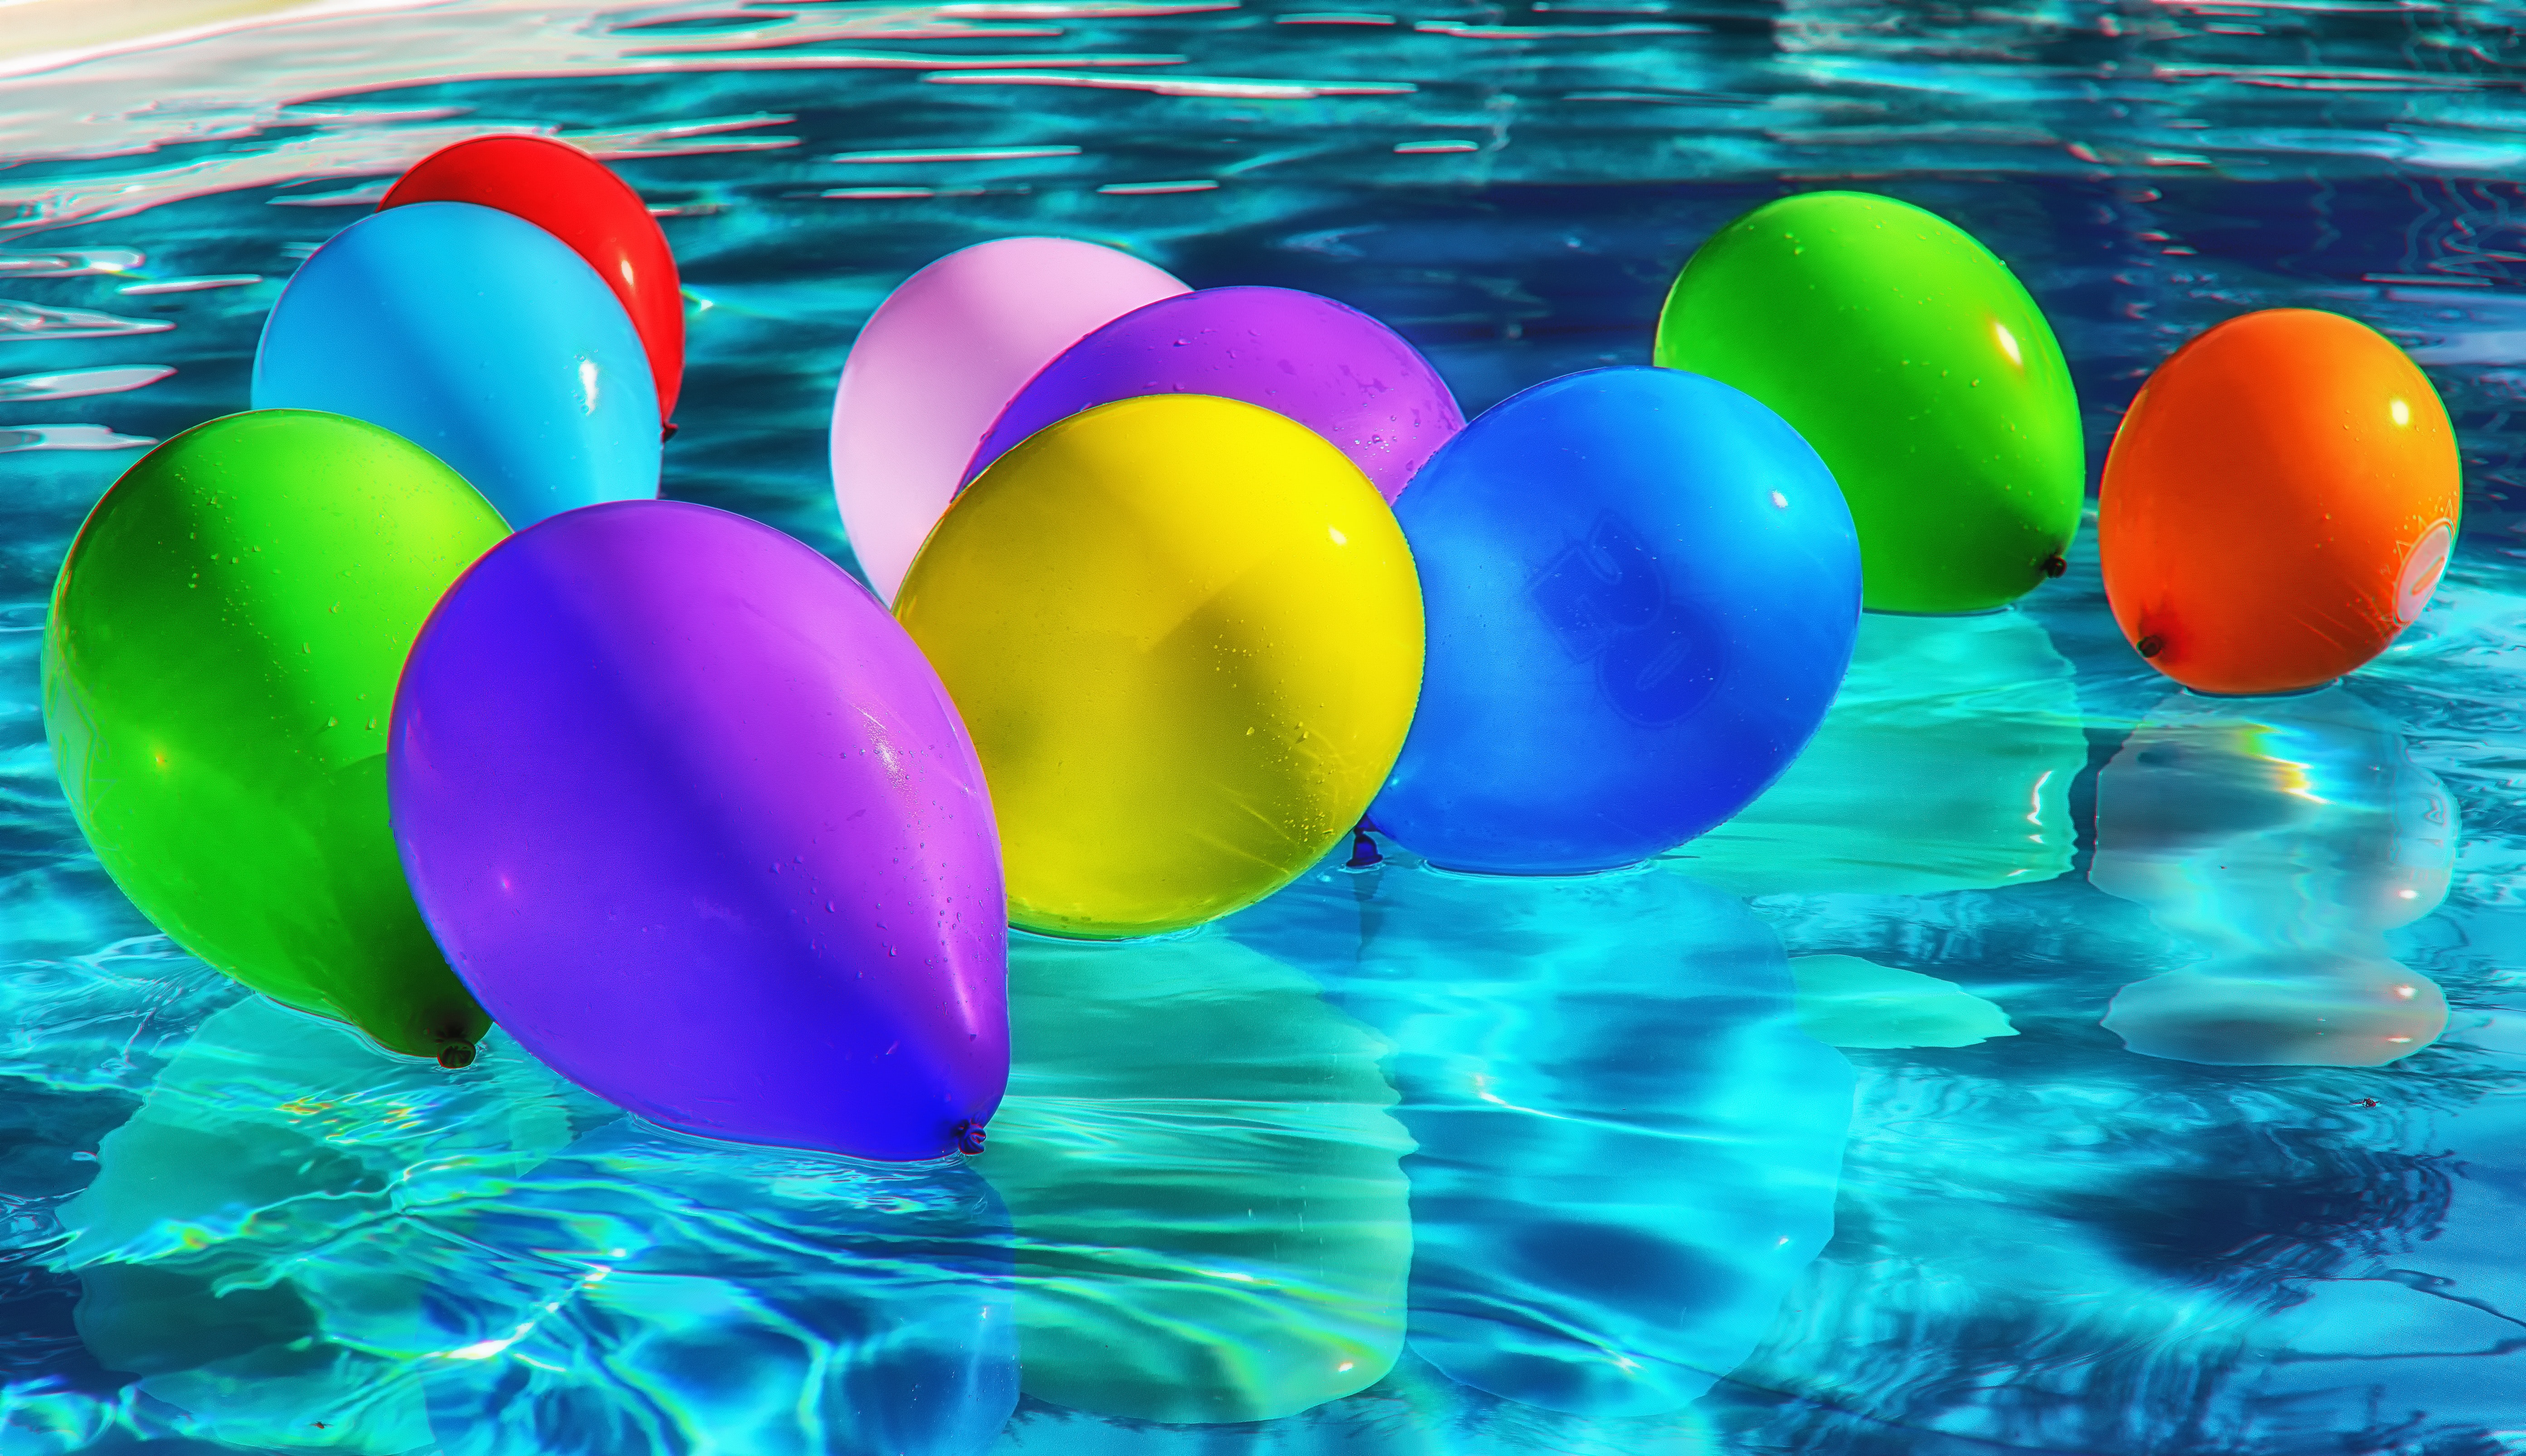 photo of balloons on water